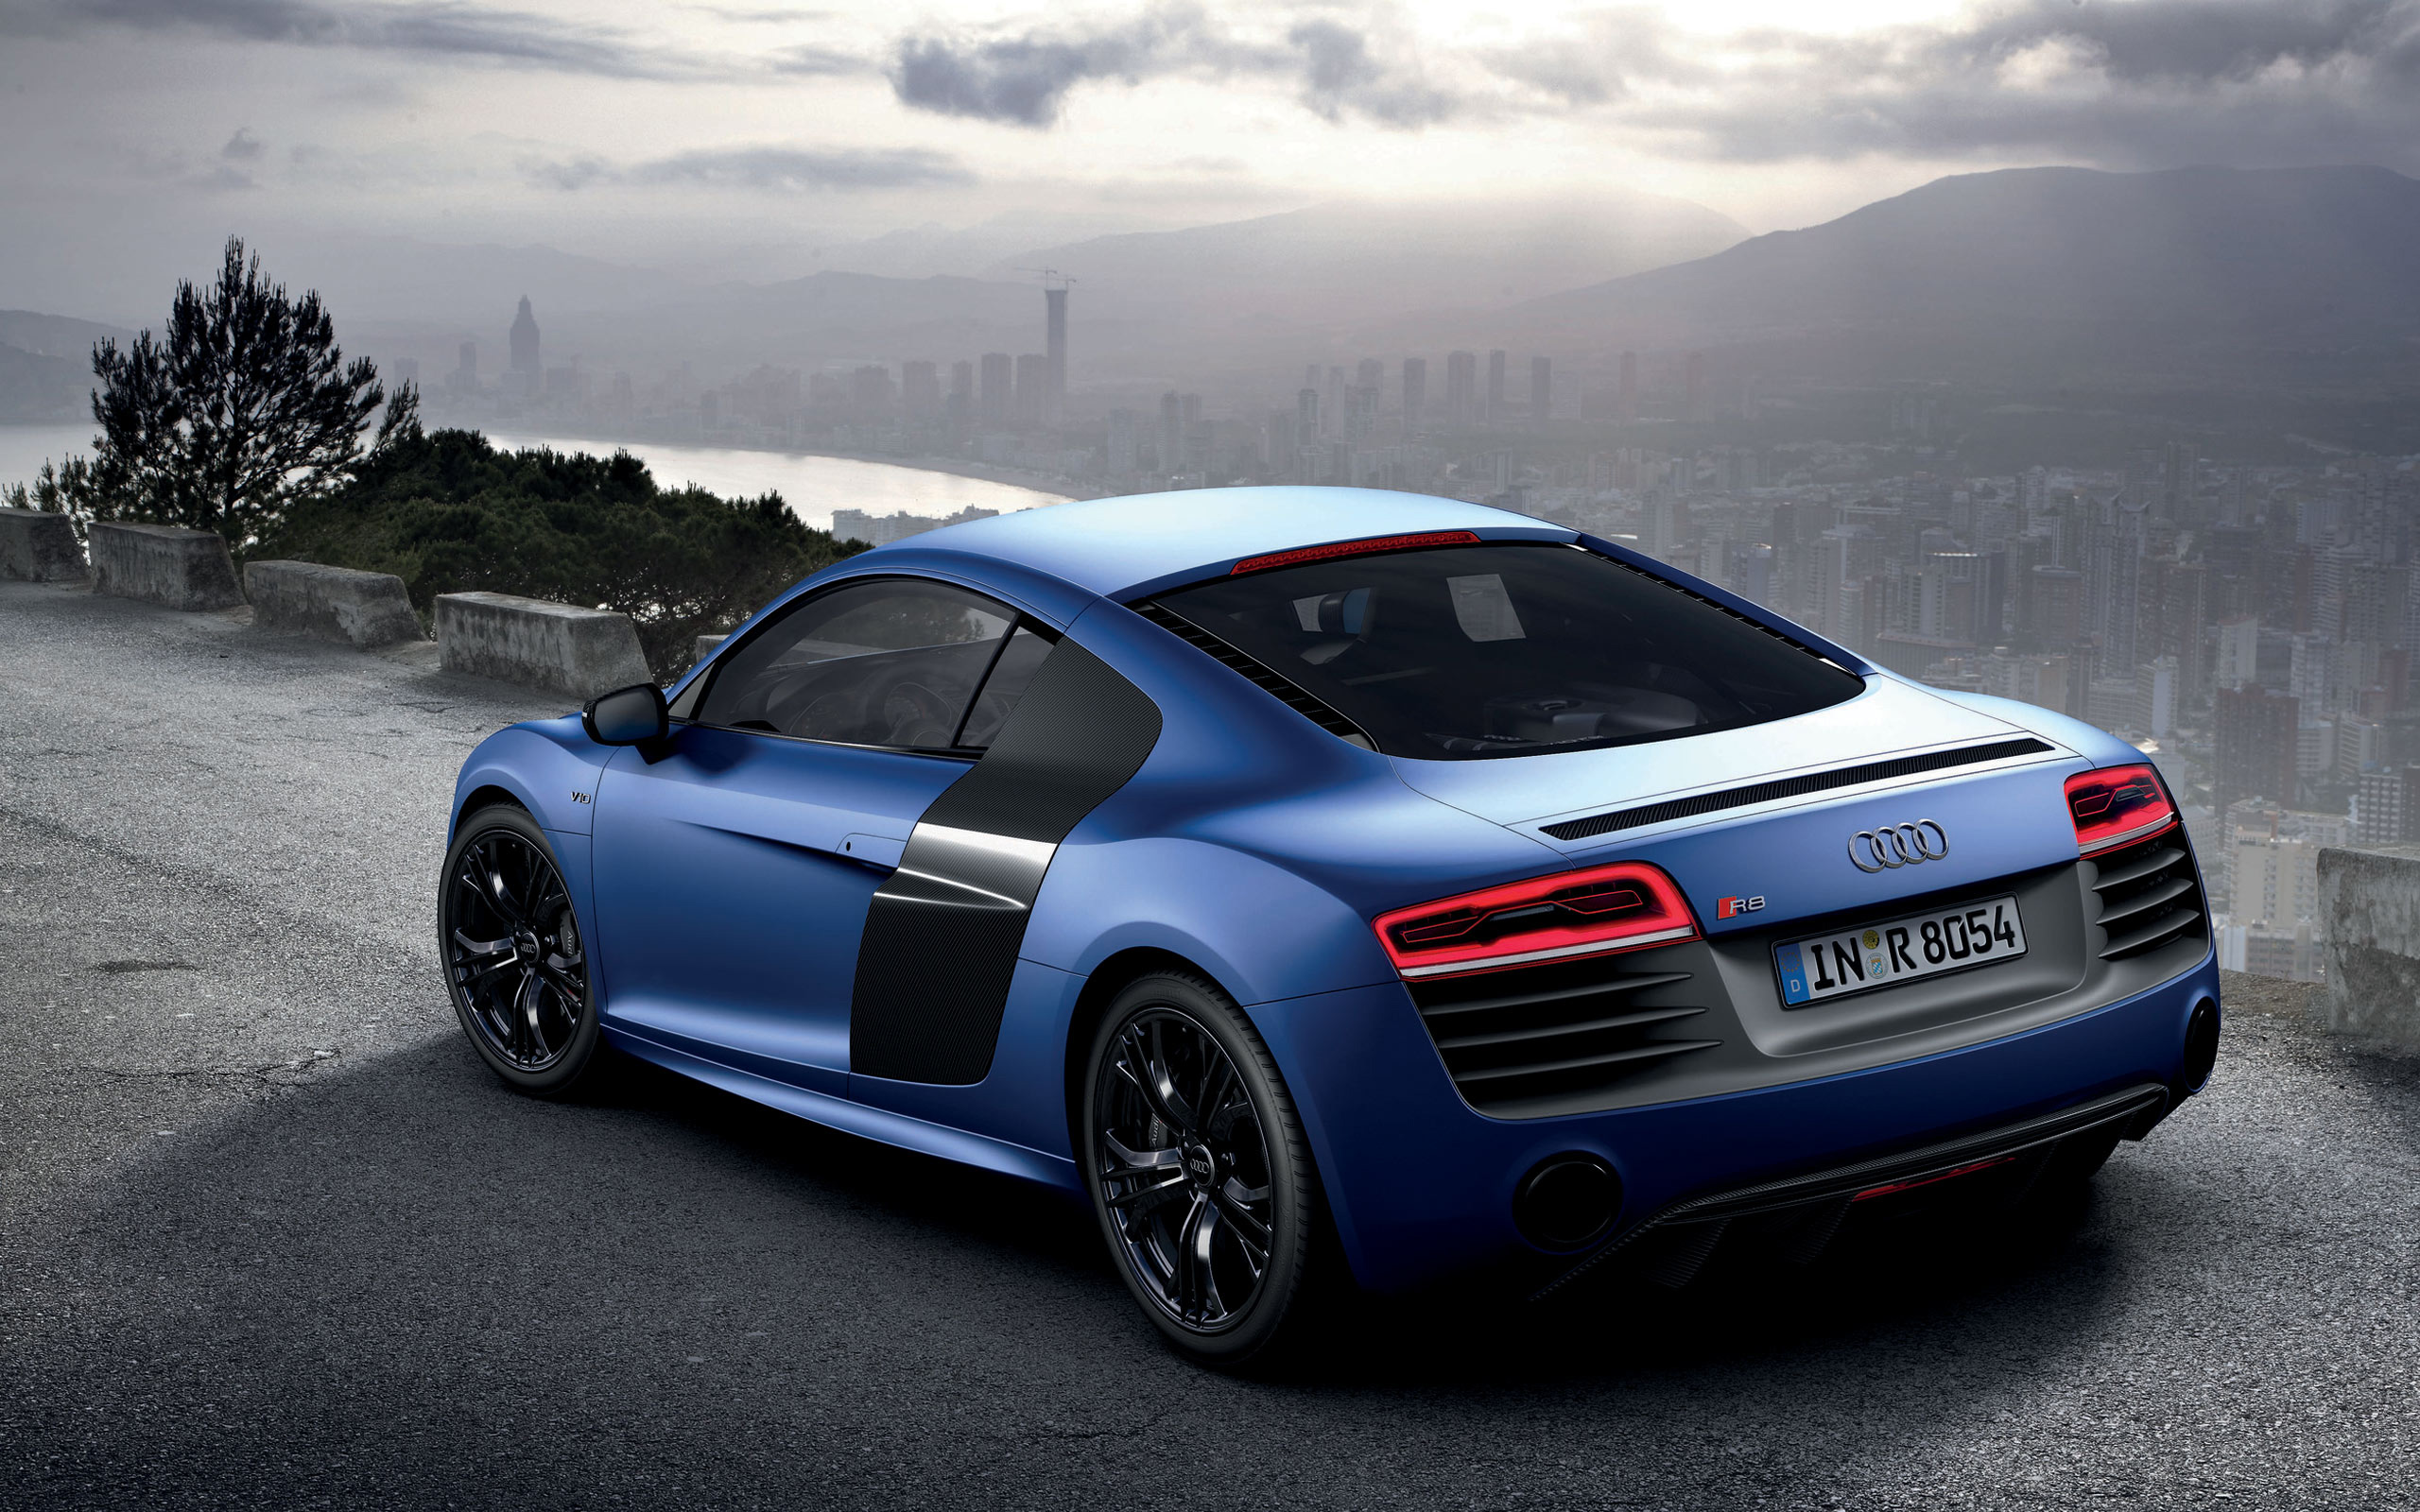 2013 audi r8 v10 plus 2 wallpaper hd car wallpapers id. Black Bedroom Furniture Sets. Home Design Ideas